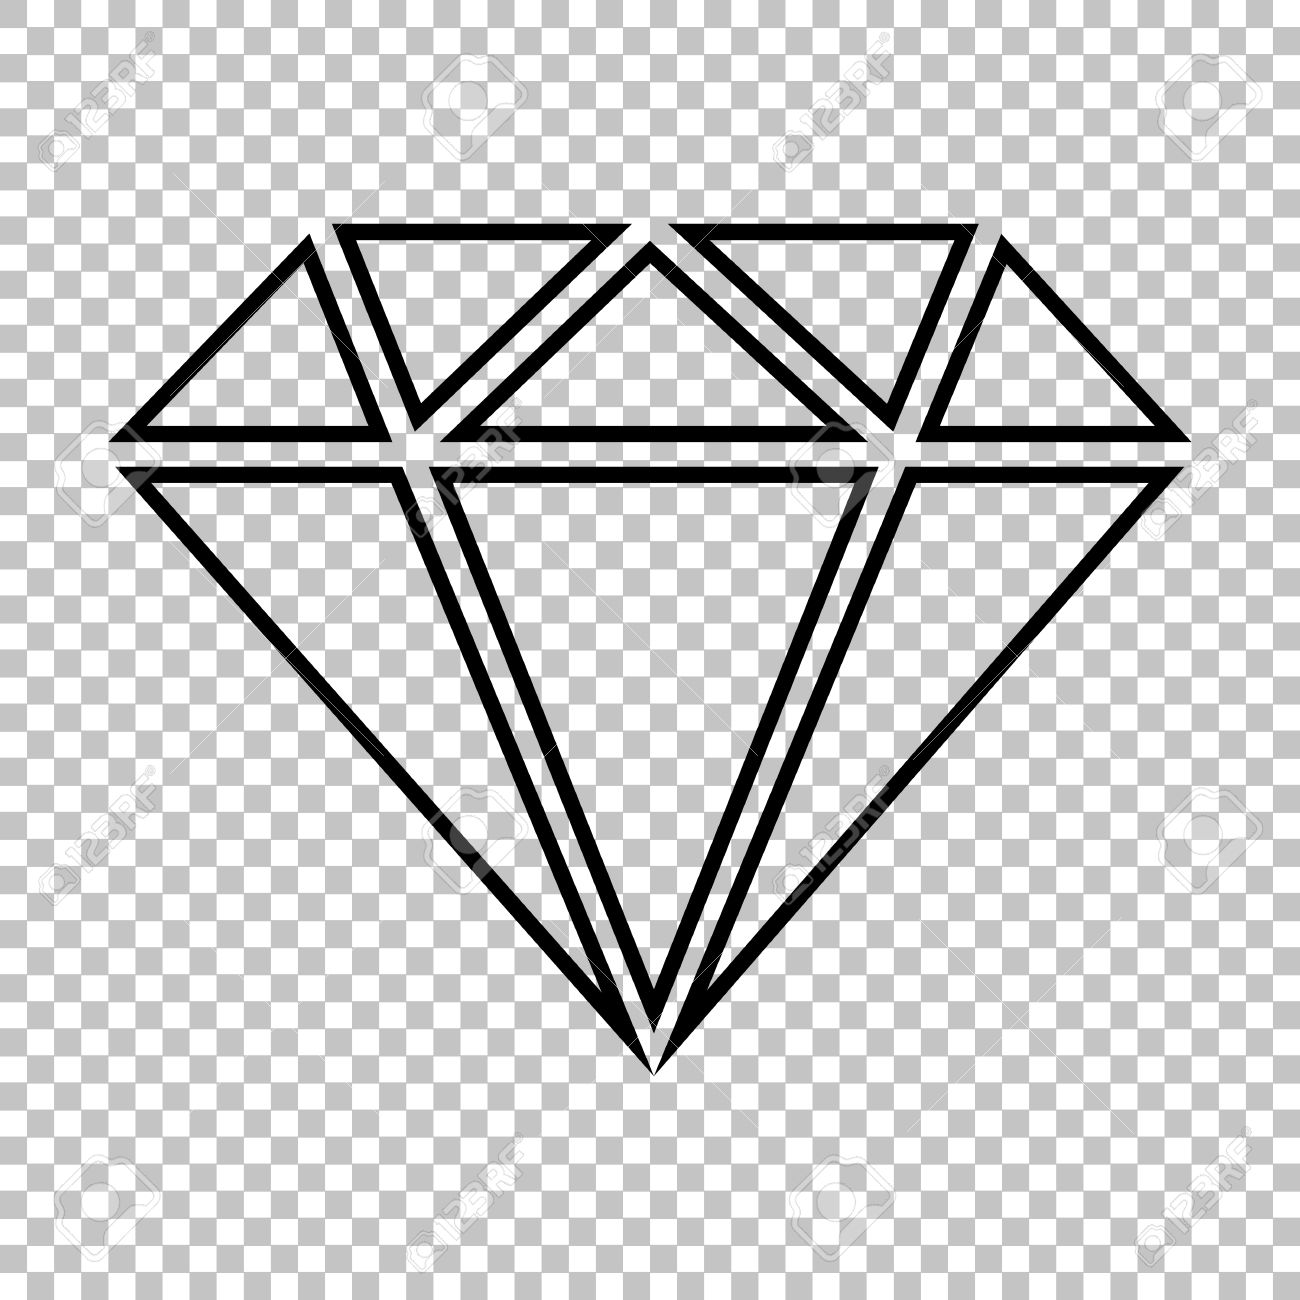 Diamond Clipart Transparent Background.